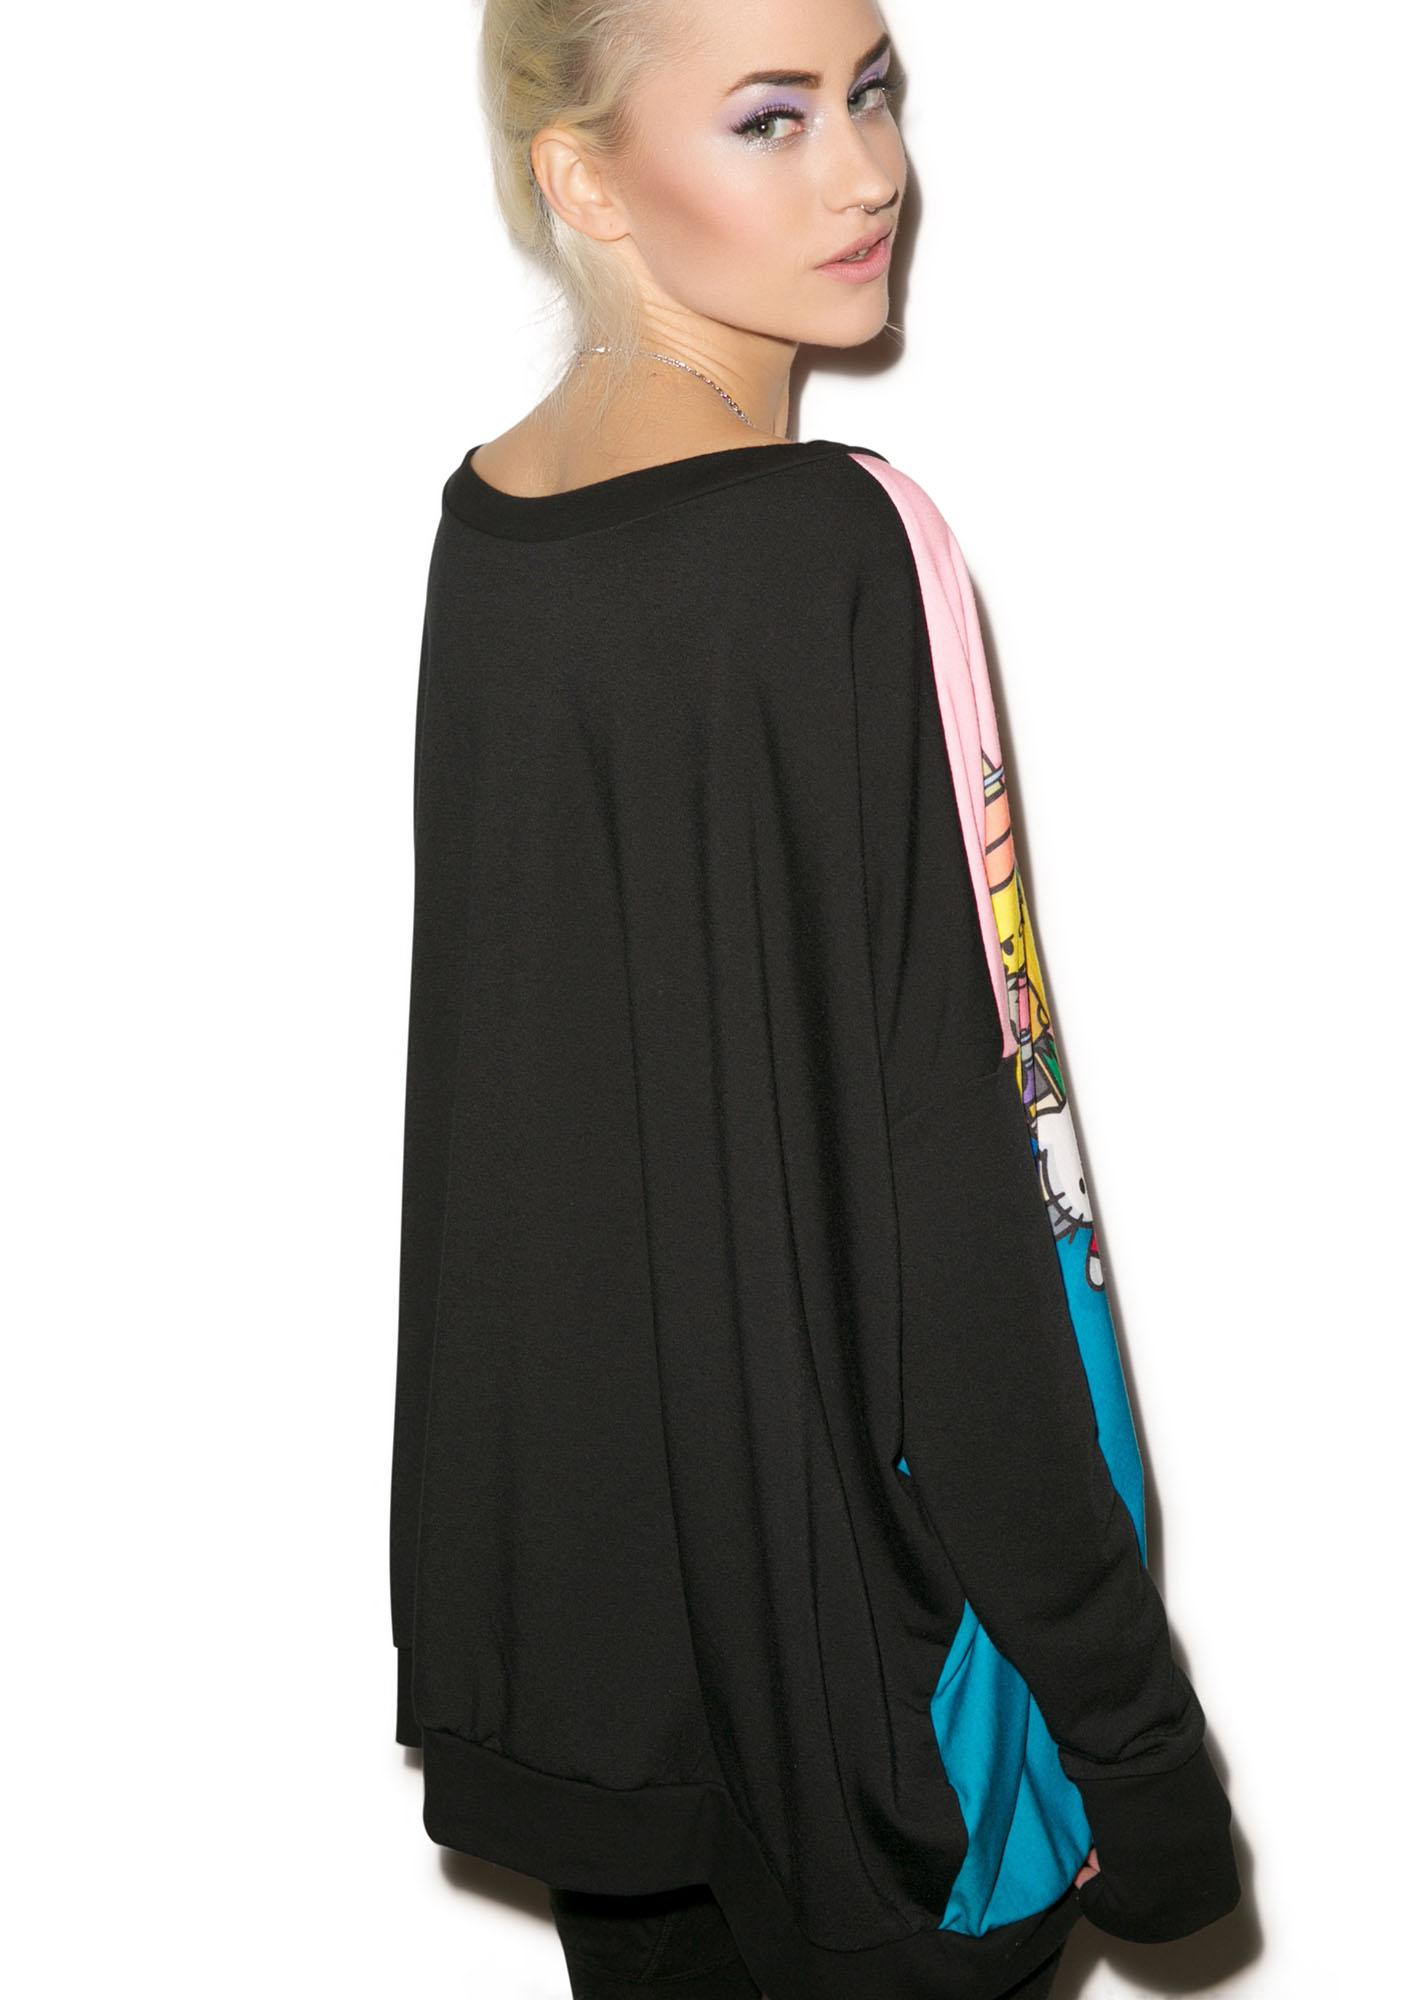 Japan L.A. The Couch Party Poncho Sweater